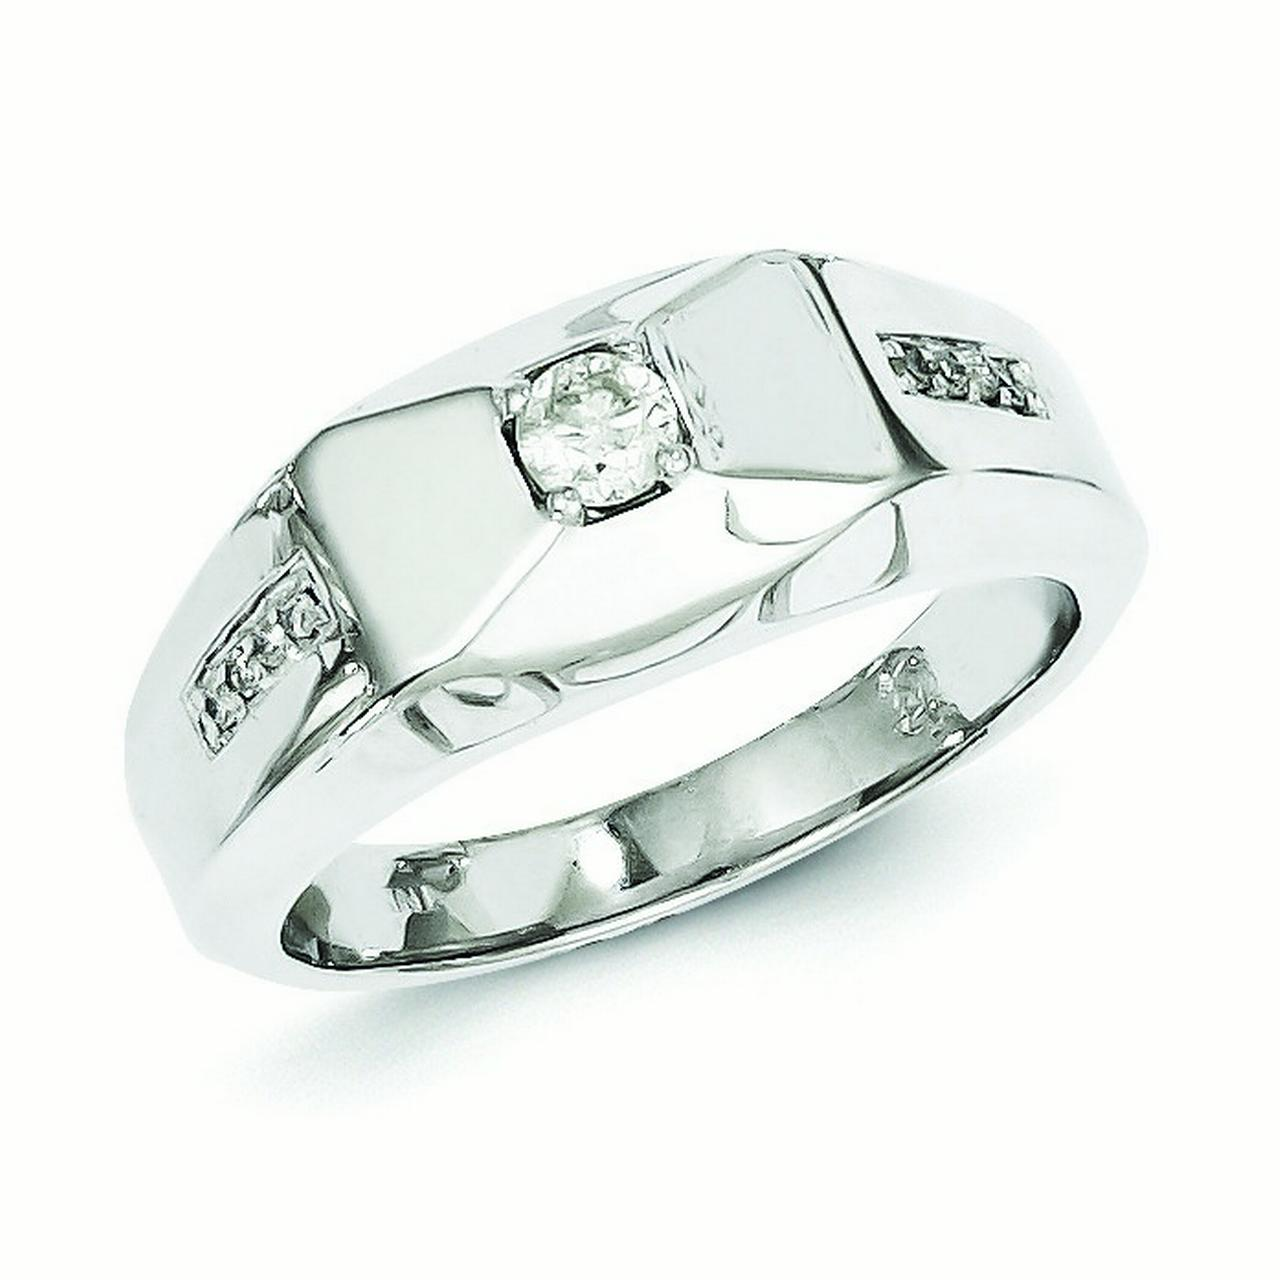 Sterling Silver Rhodium Plated Diamond Mens Ring - Ring Size: 9 to 11